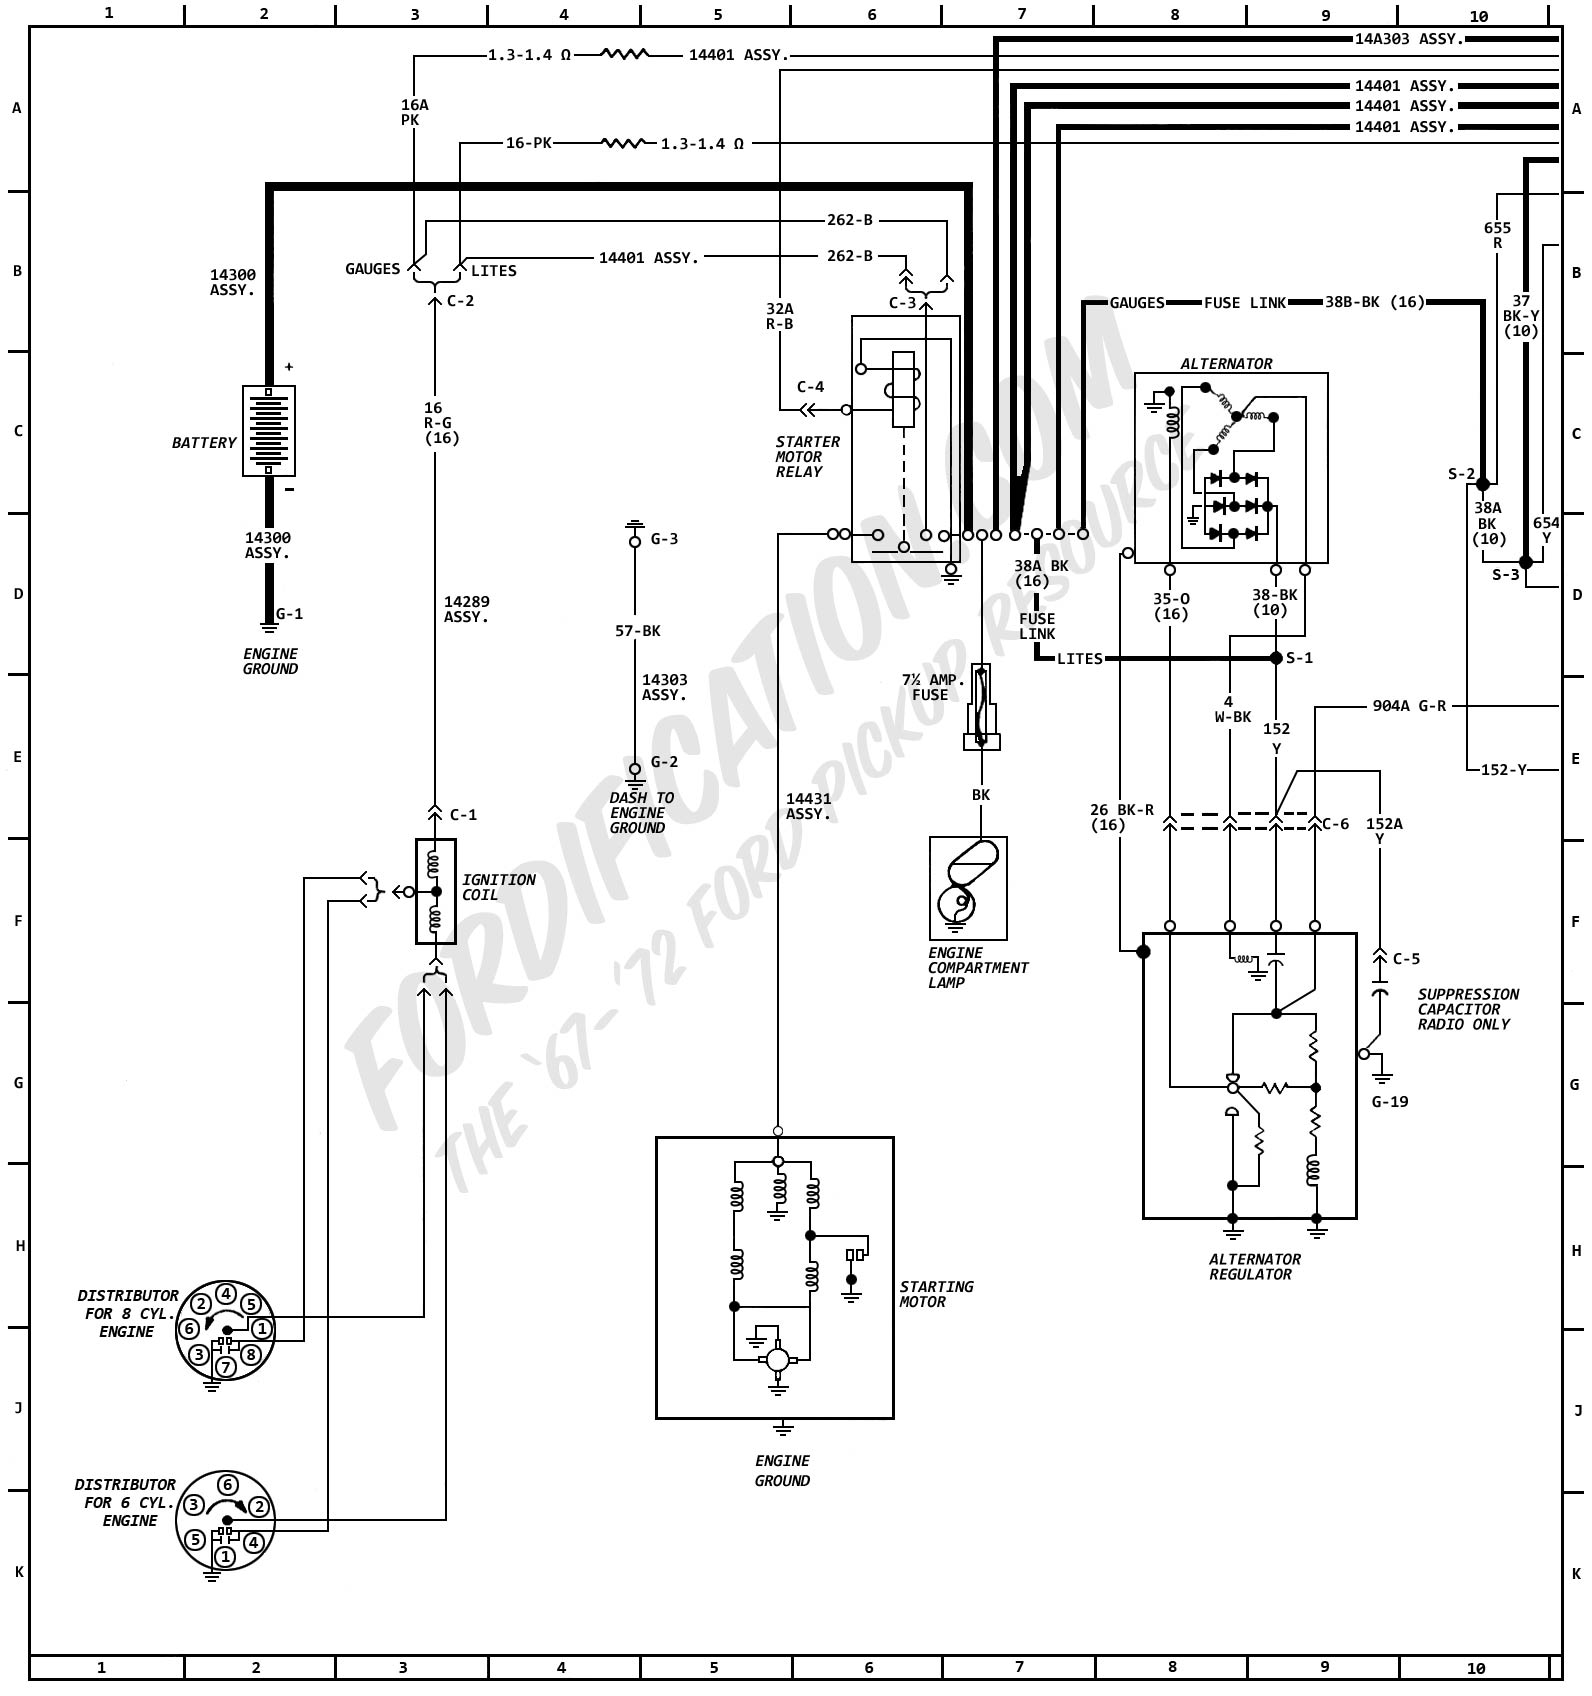 1972MasterWiring_01 electrical wiring diagram of ford f100 all about wiring diagrams Electrical Wiring Diagrams For Dummies at webbmarketing.co